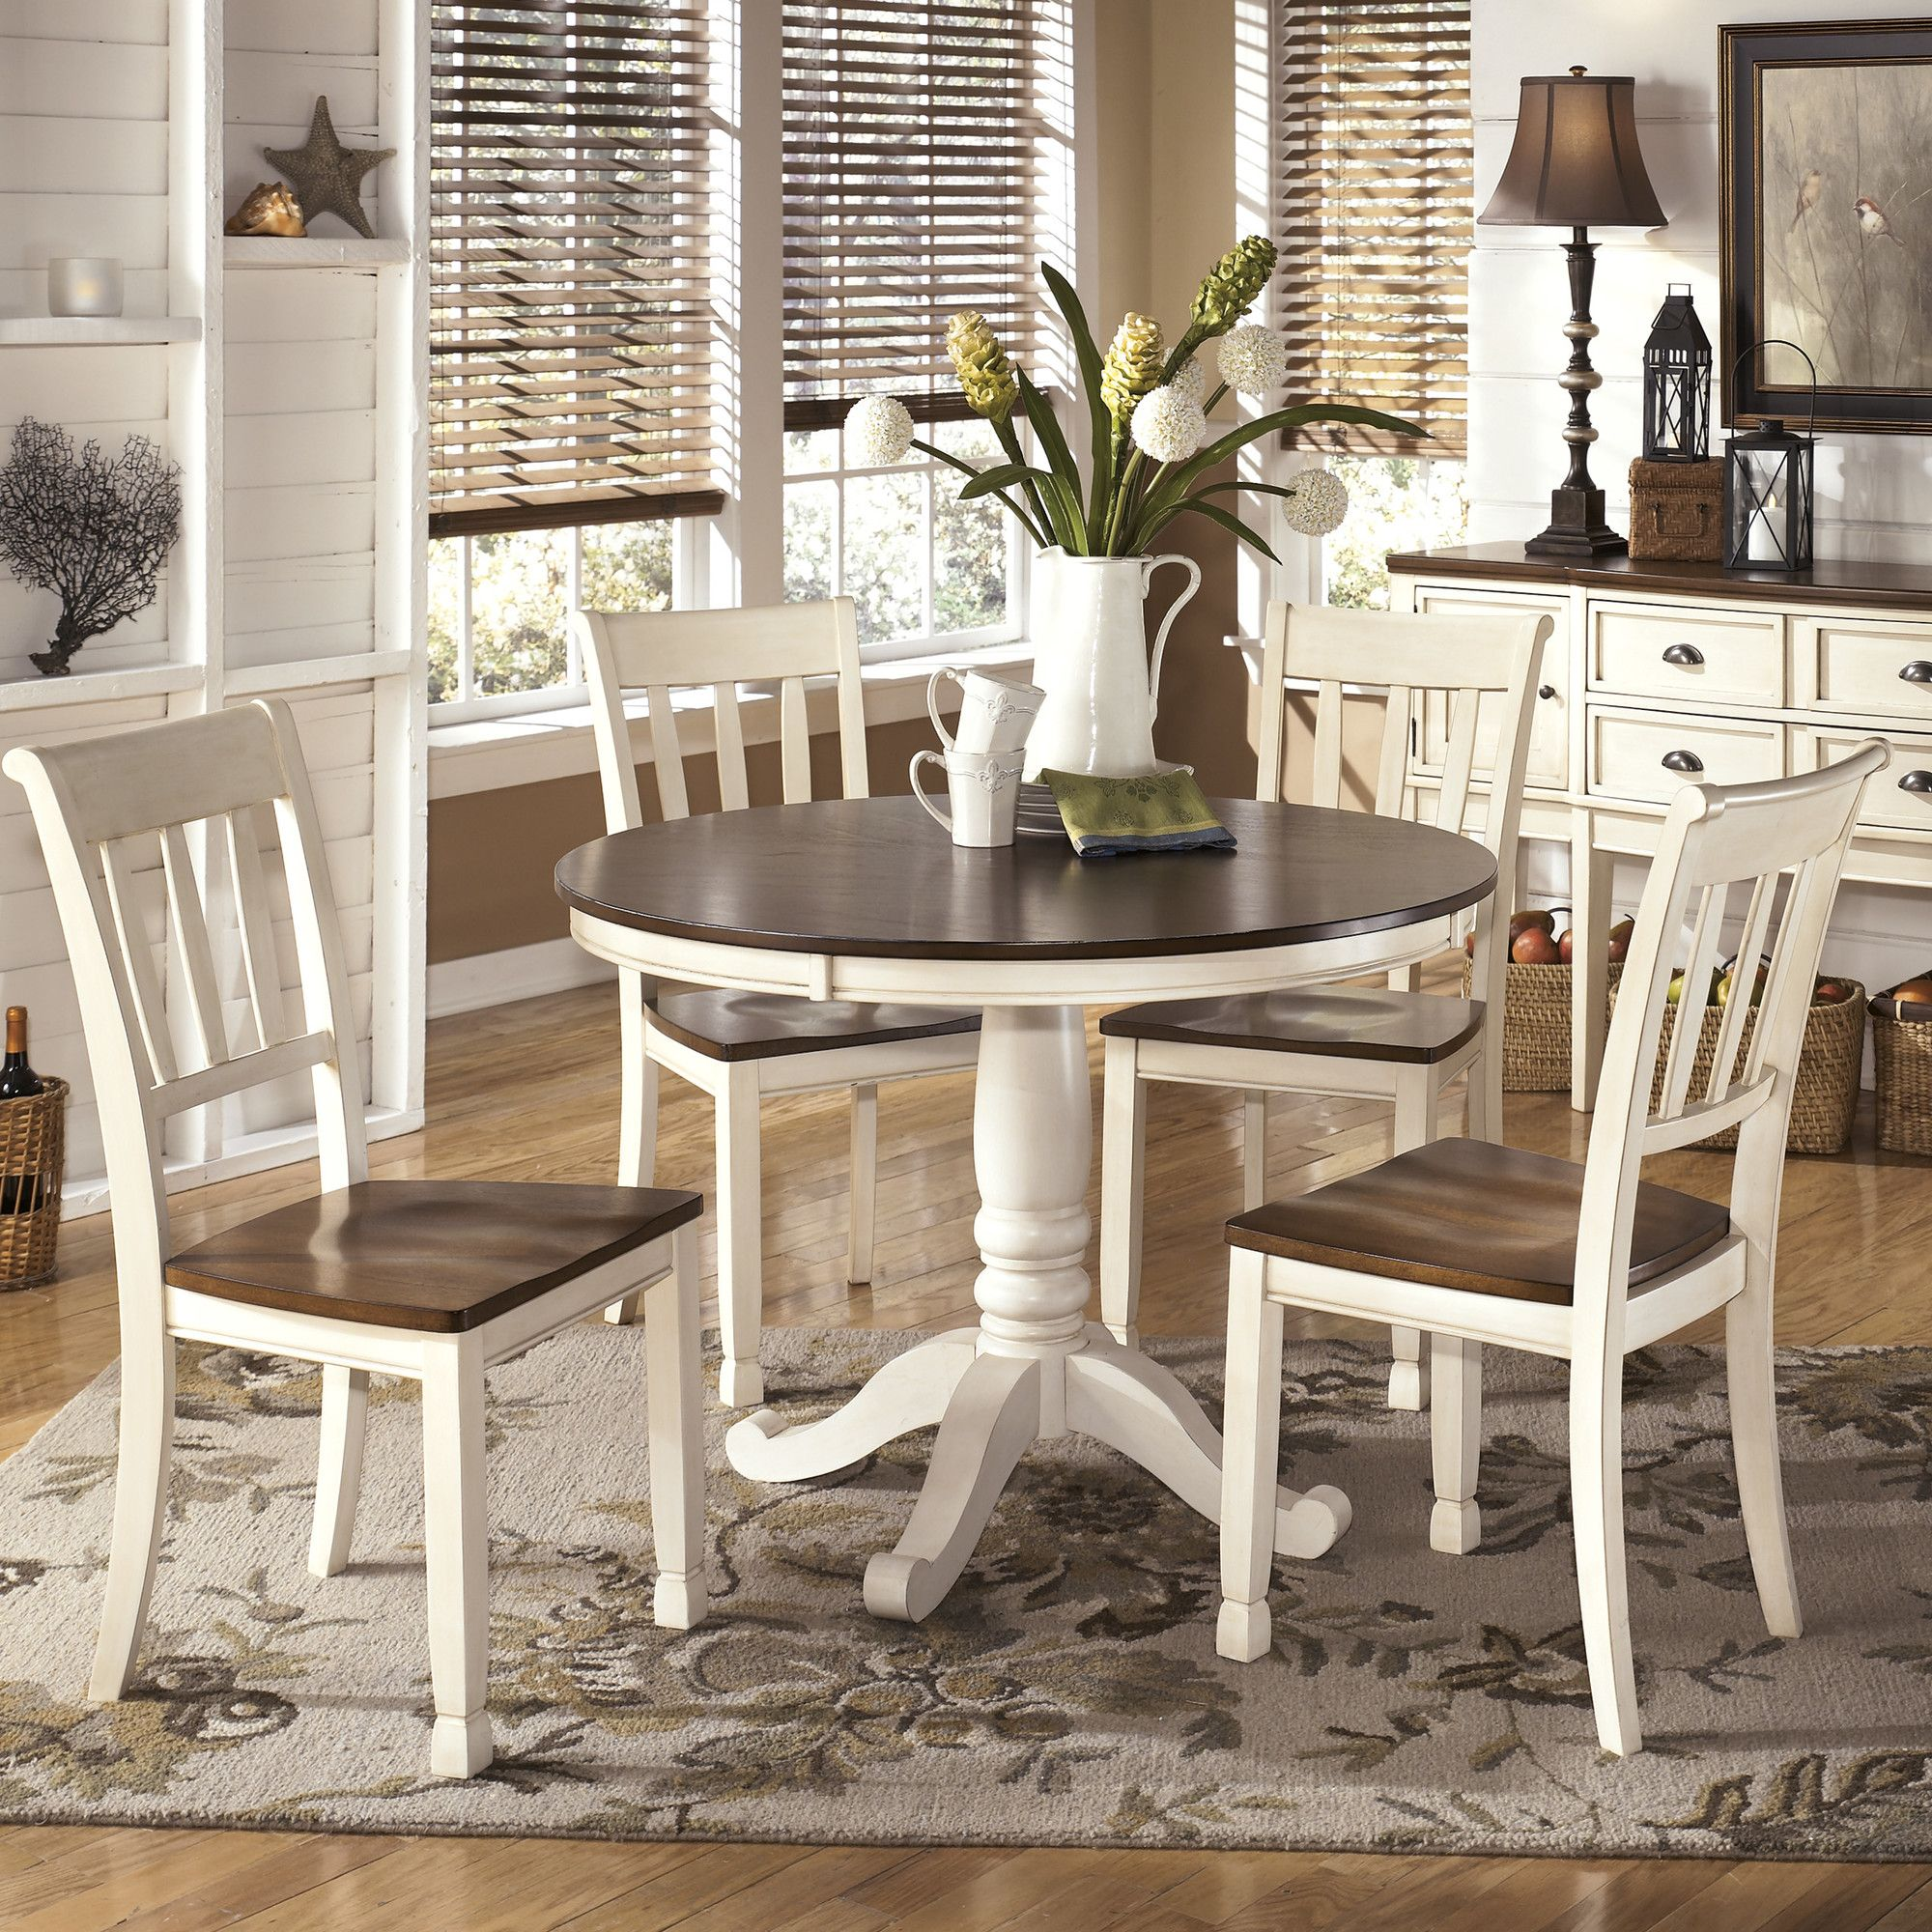 Rooms To Go Dining Sets: Online Home Store For Furniture, Decor